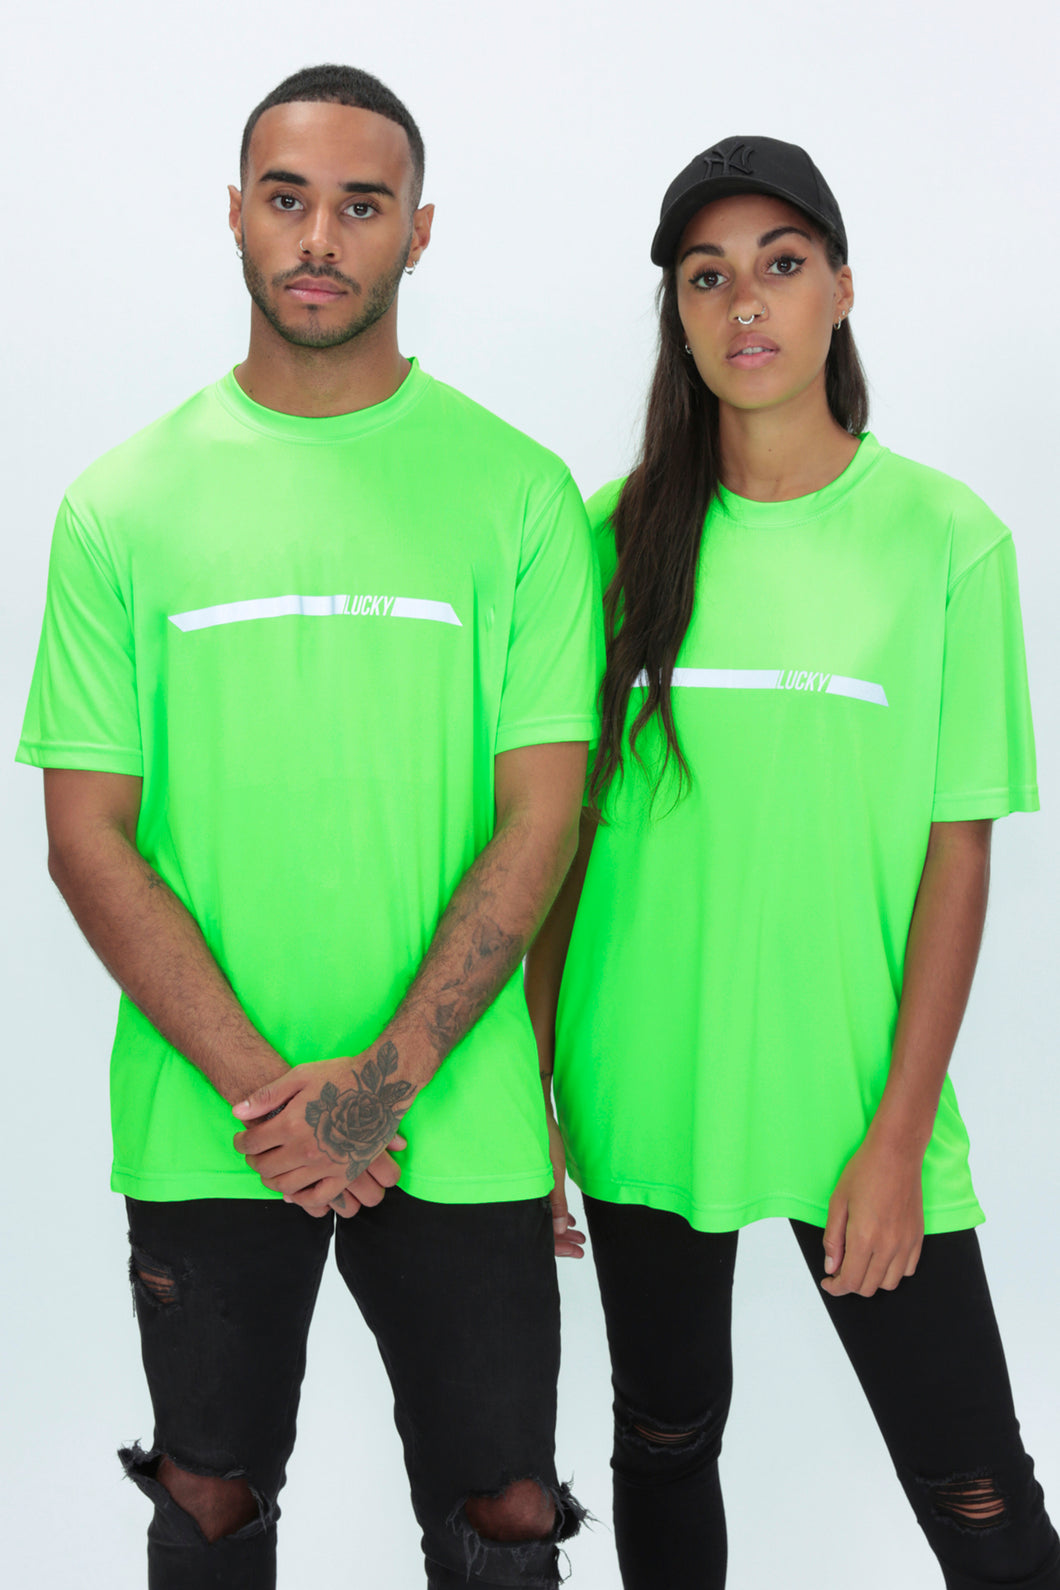 REFLECTIVE Racer Tee in Neon Green